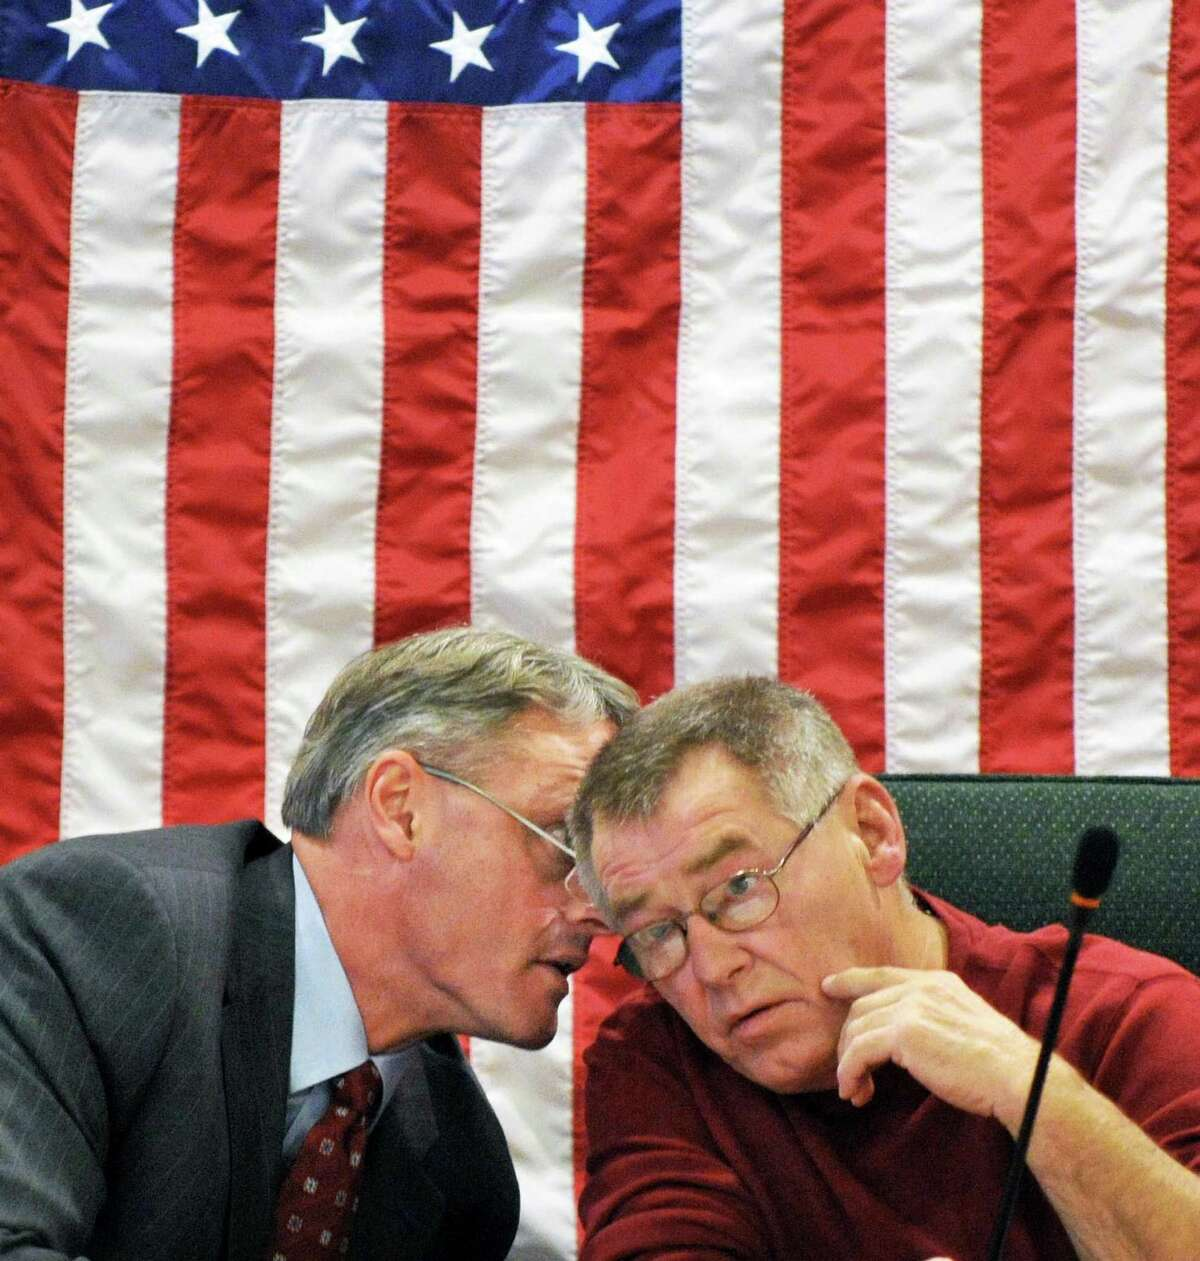 Saratoga County Administrator Spencer Hellwig, left, and former Milton Supervisor Frank Thompson confer during the Saratoga Board of Supervisors' budget workshop session in Ballston Spa, Friday, Nov. 18, 2011. (John Carl D'Annibale / Times Union)